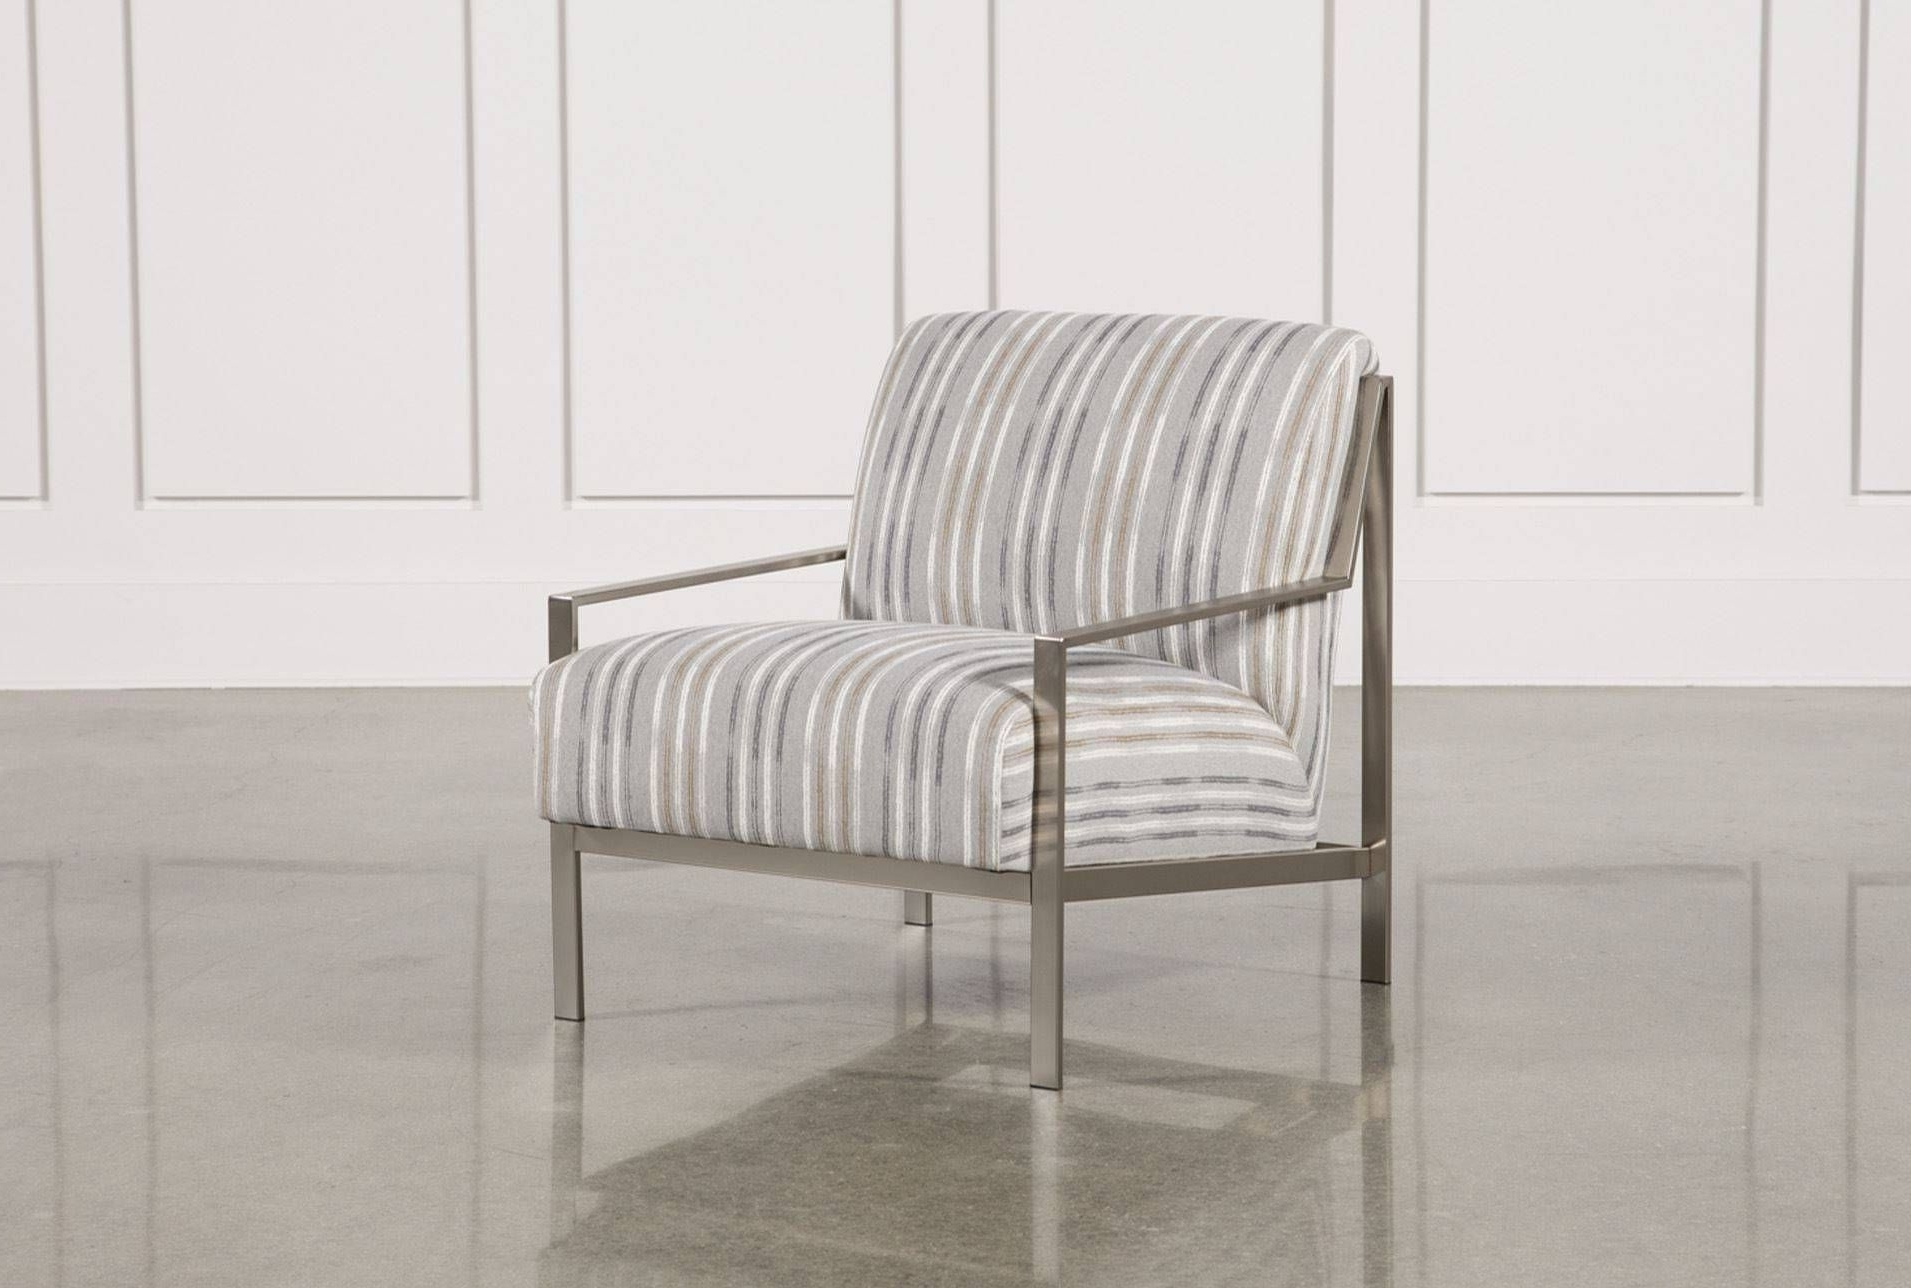 2017 Durango Smoke & Warm Cedar Dining Chairs Pertaining To Finley Accent Chair, Grey (Gallery 3 of 20)